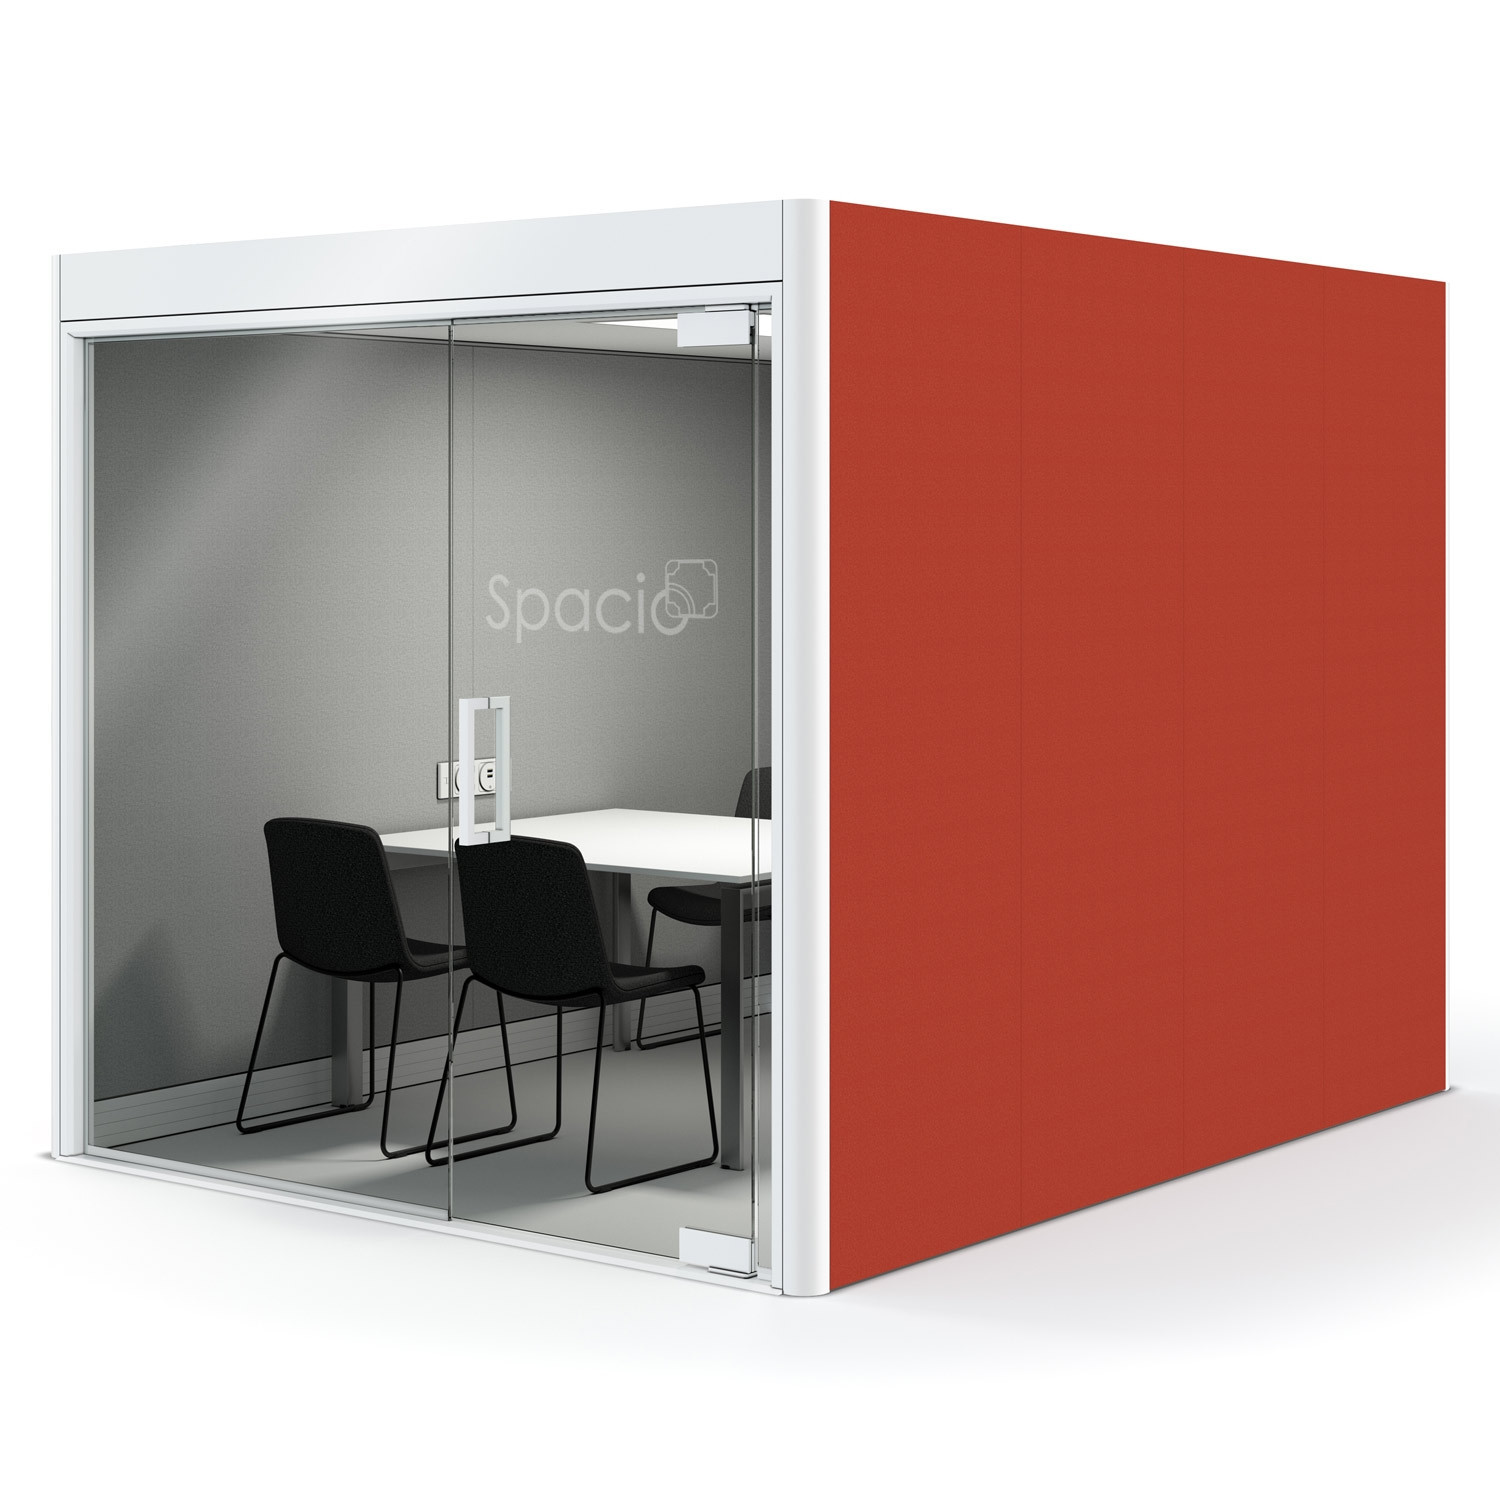 Spacio Office Meeting Pods